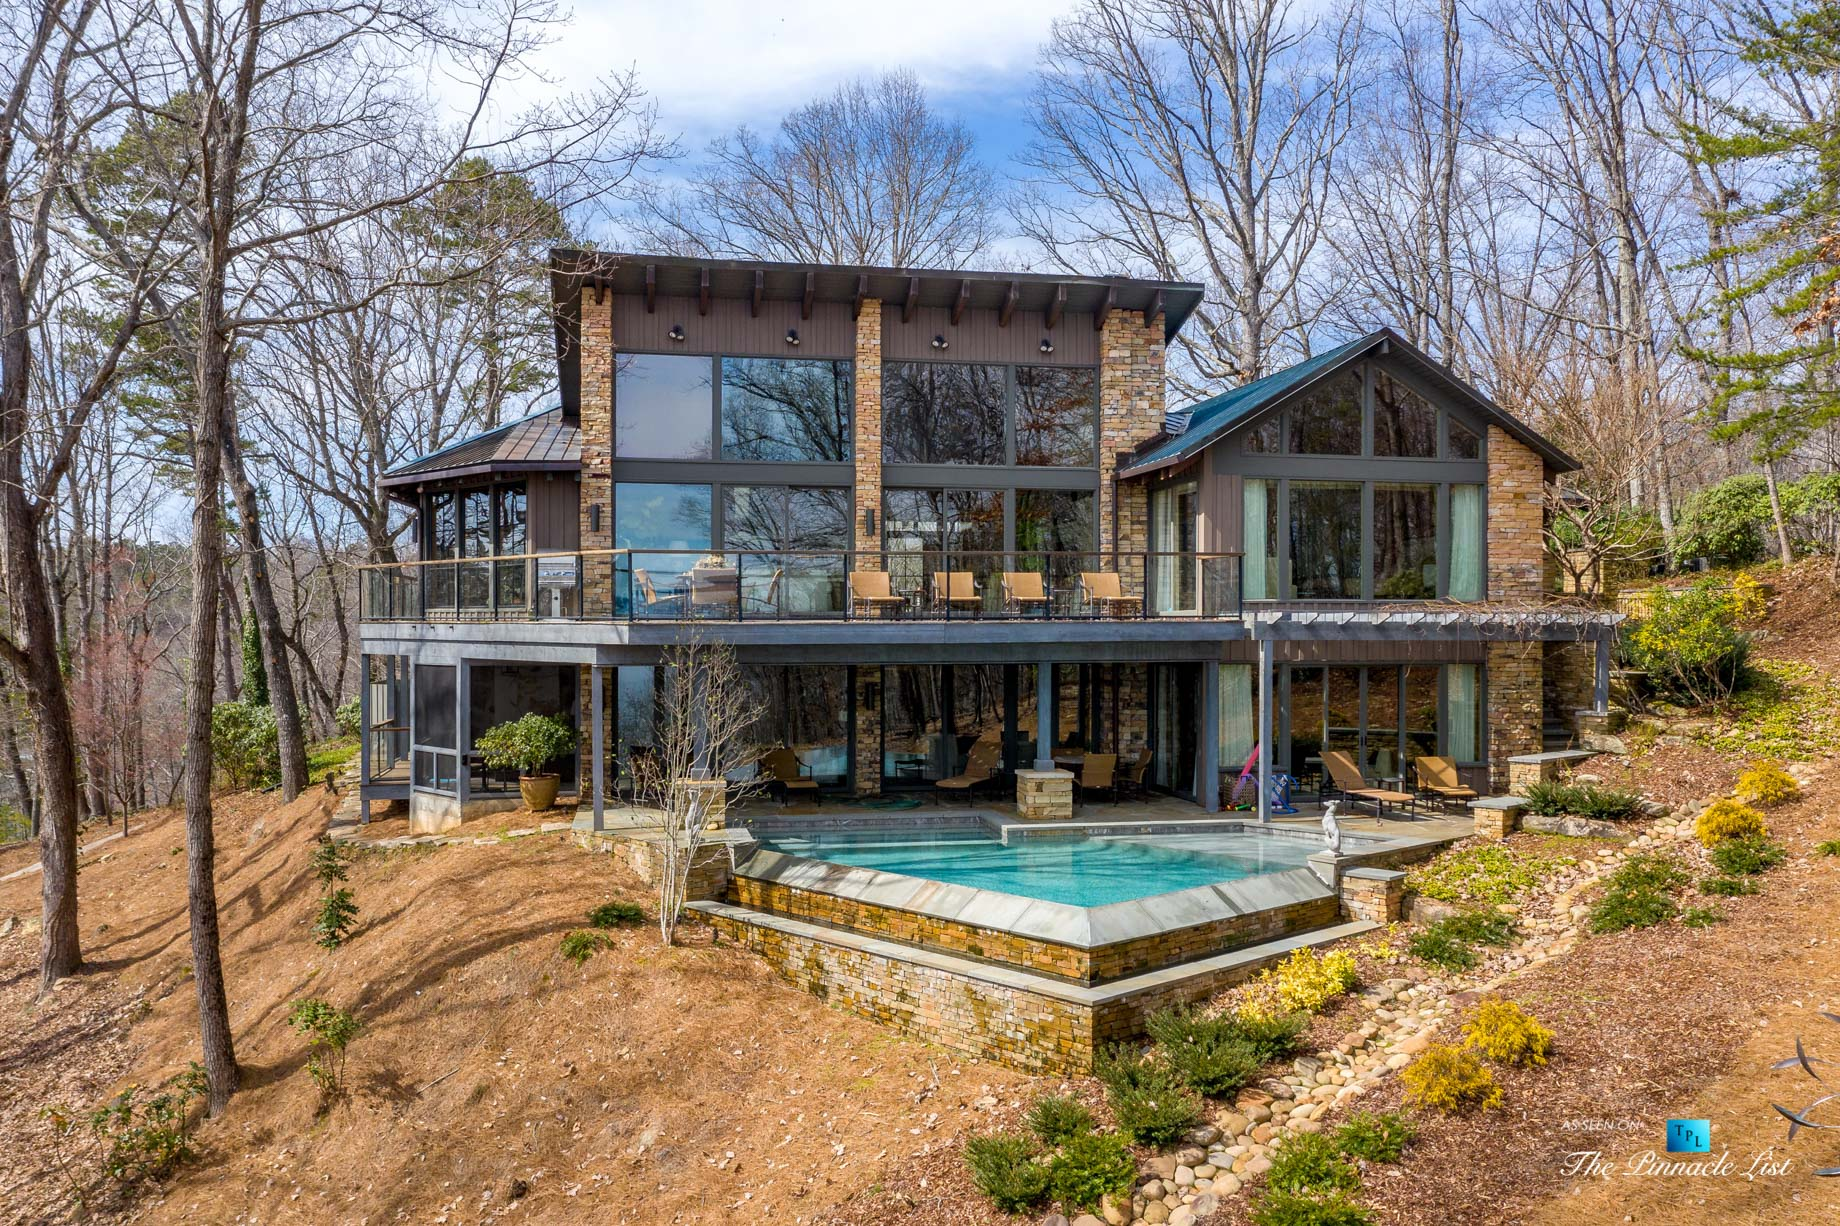 7860 Chestnut Hill Rd, Cumming, GA, USA – Exterior Deck and Pool – Luxury Real Estate – Lake Lanier Mid-Century Modern Stone Home